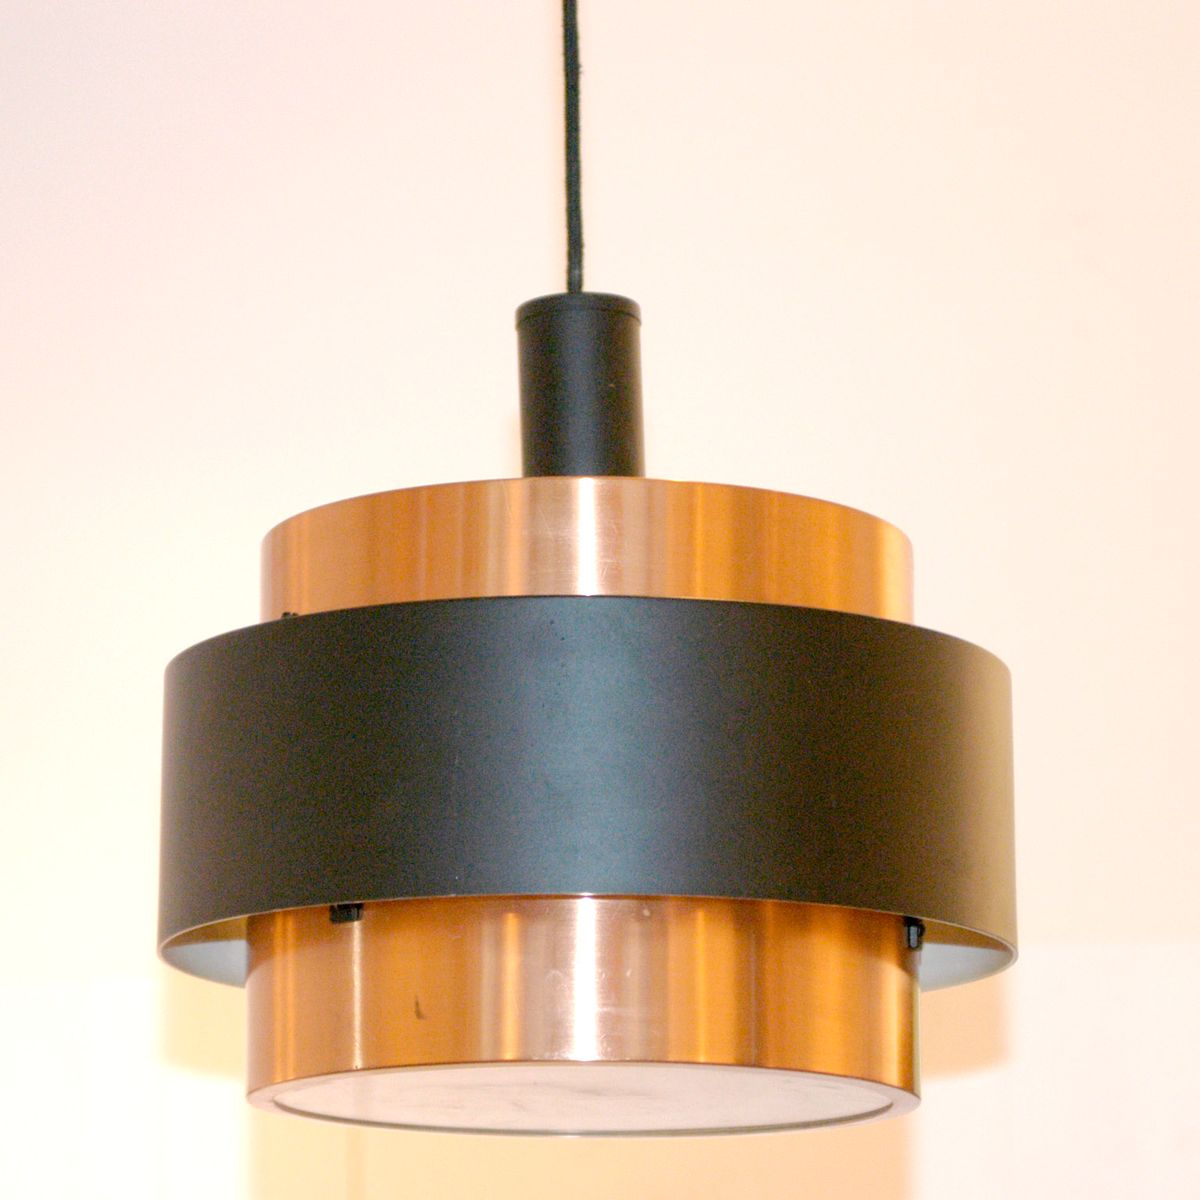 lampe suspension scandinave moderne en cuivre 1960s en vente sur pamono. Black Bedroom Furniture Sets. Home Design Ideas